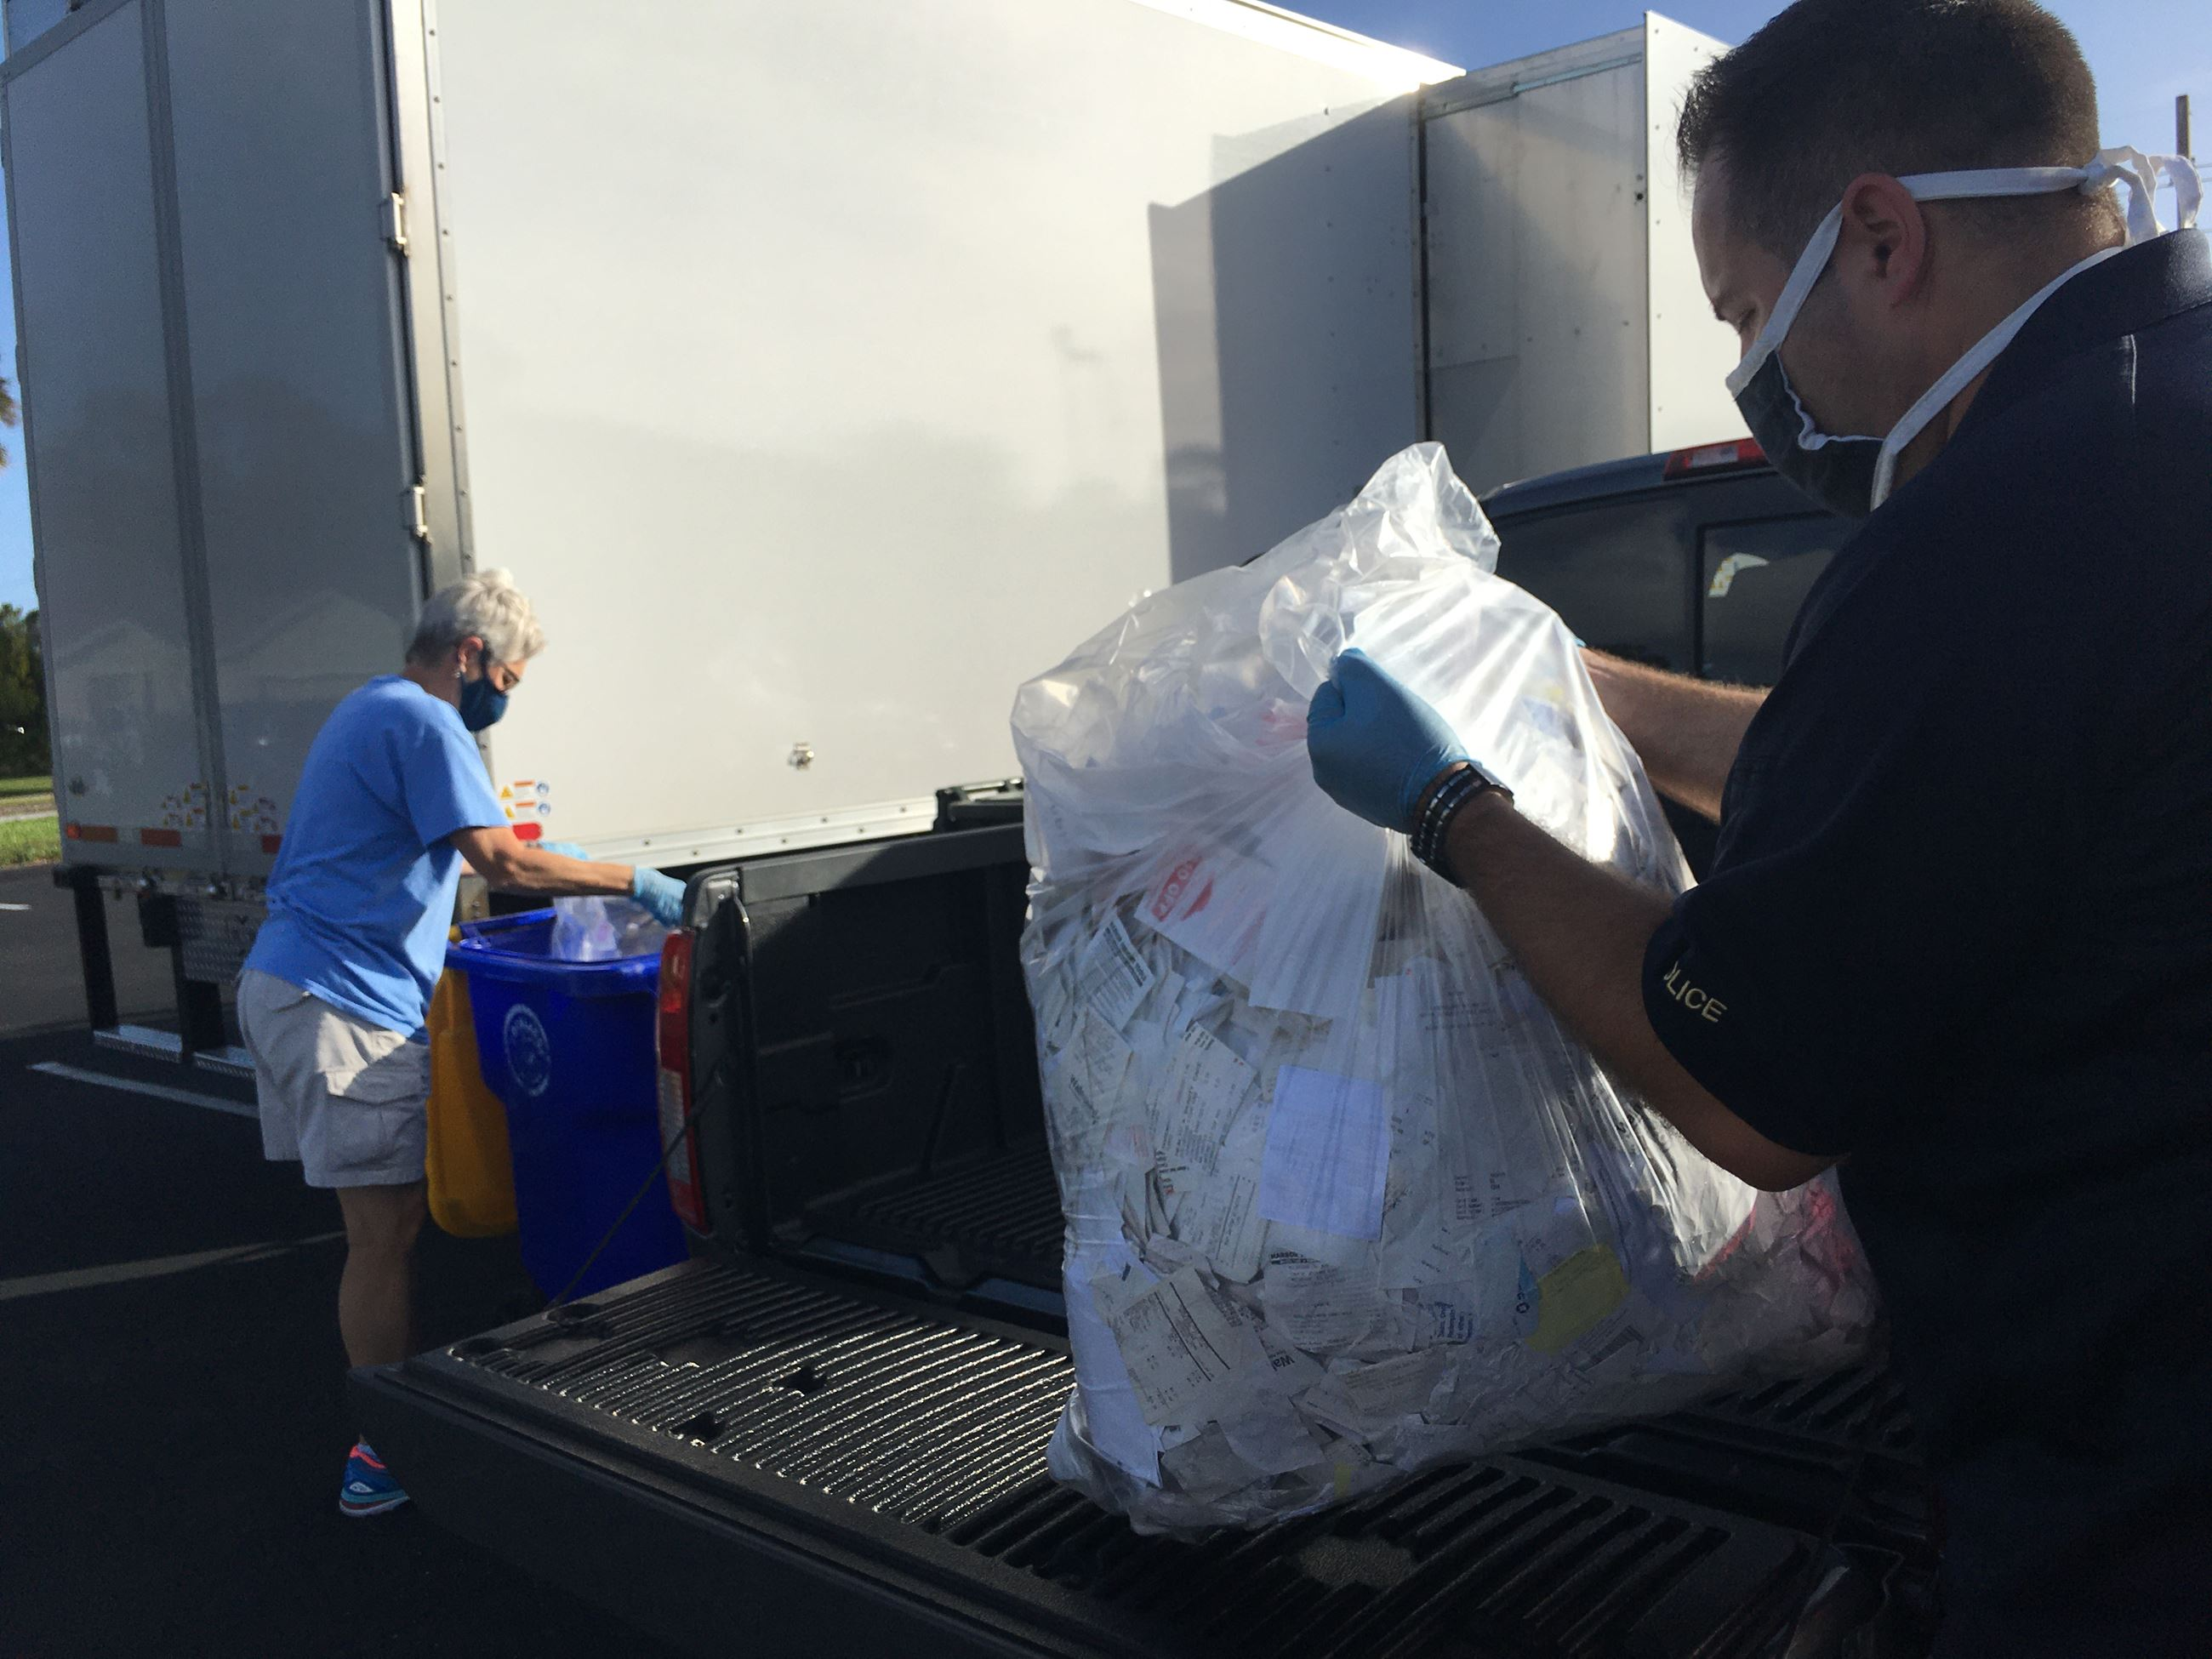 Lt. Crawford and City Manager Fettrow collecting documents to shred